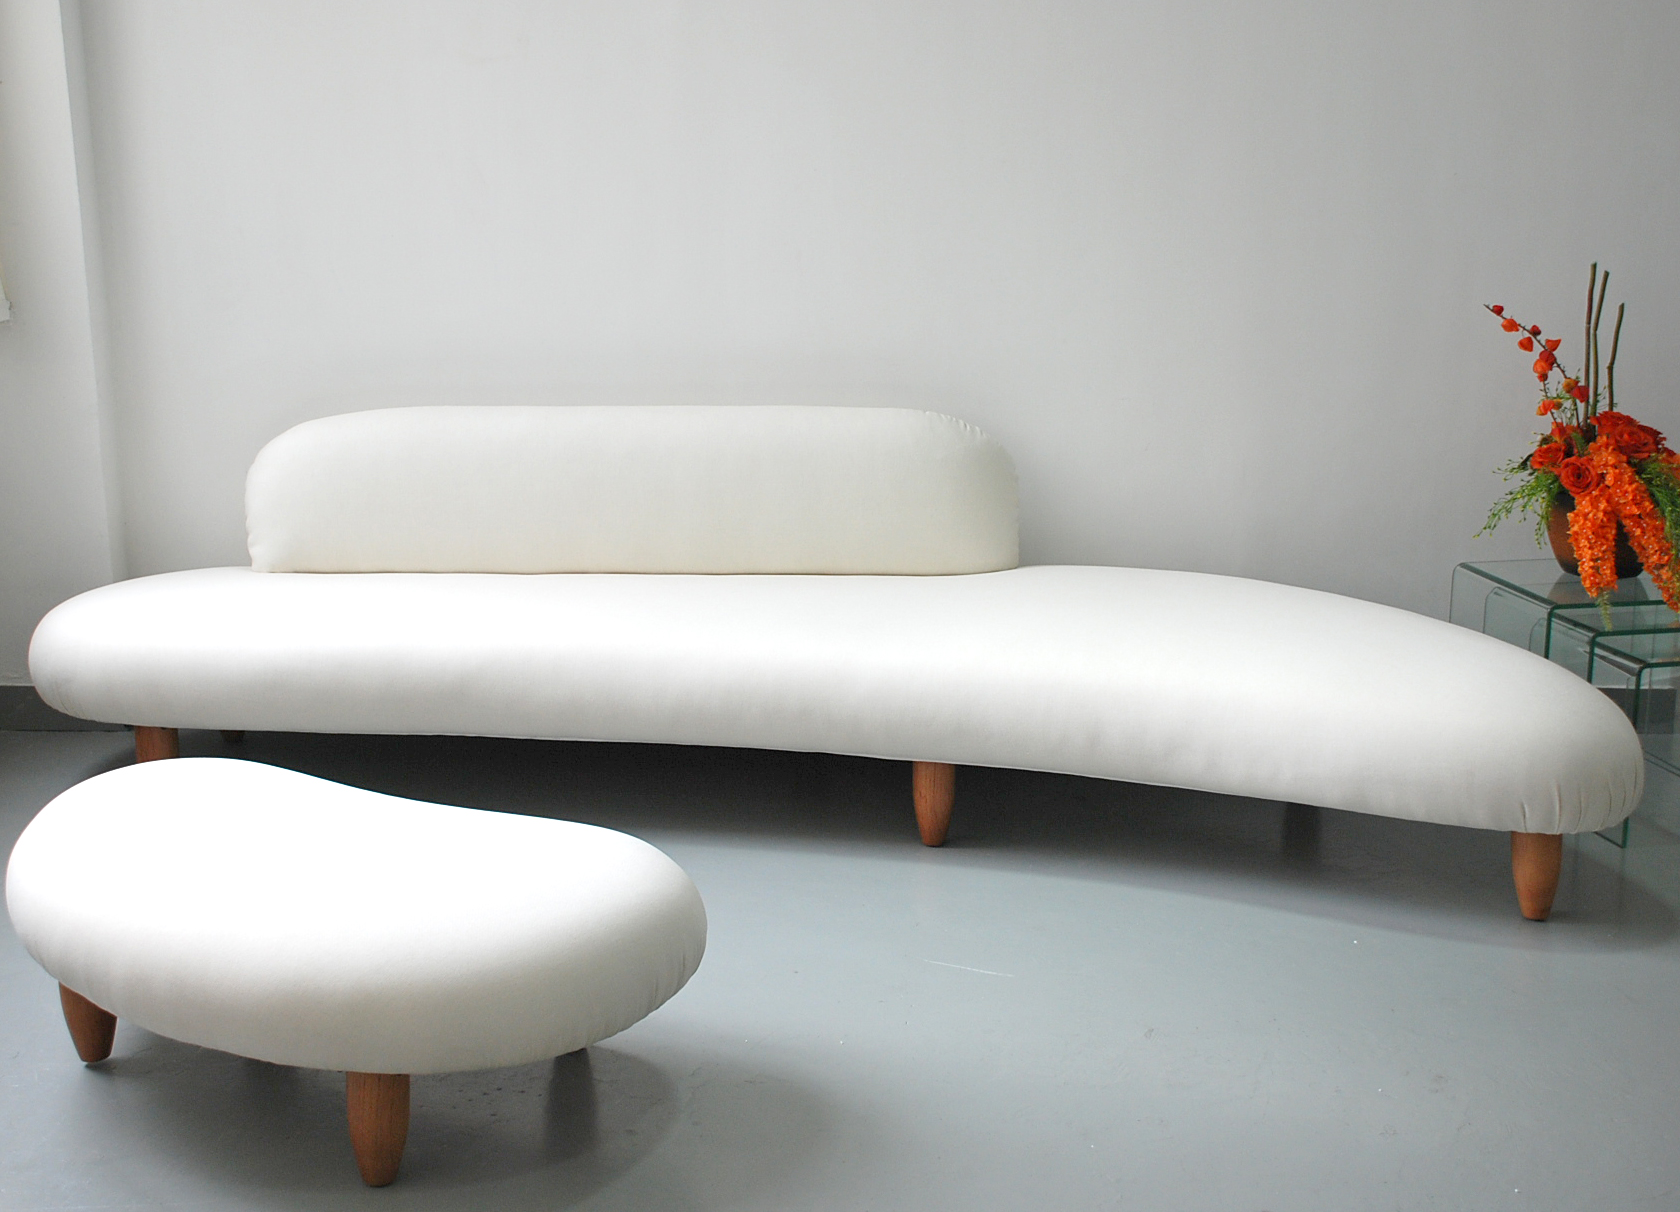 Sofa kobe furniture.